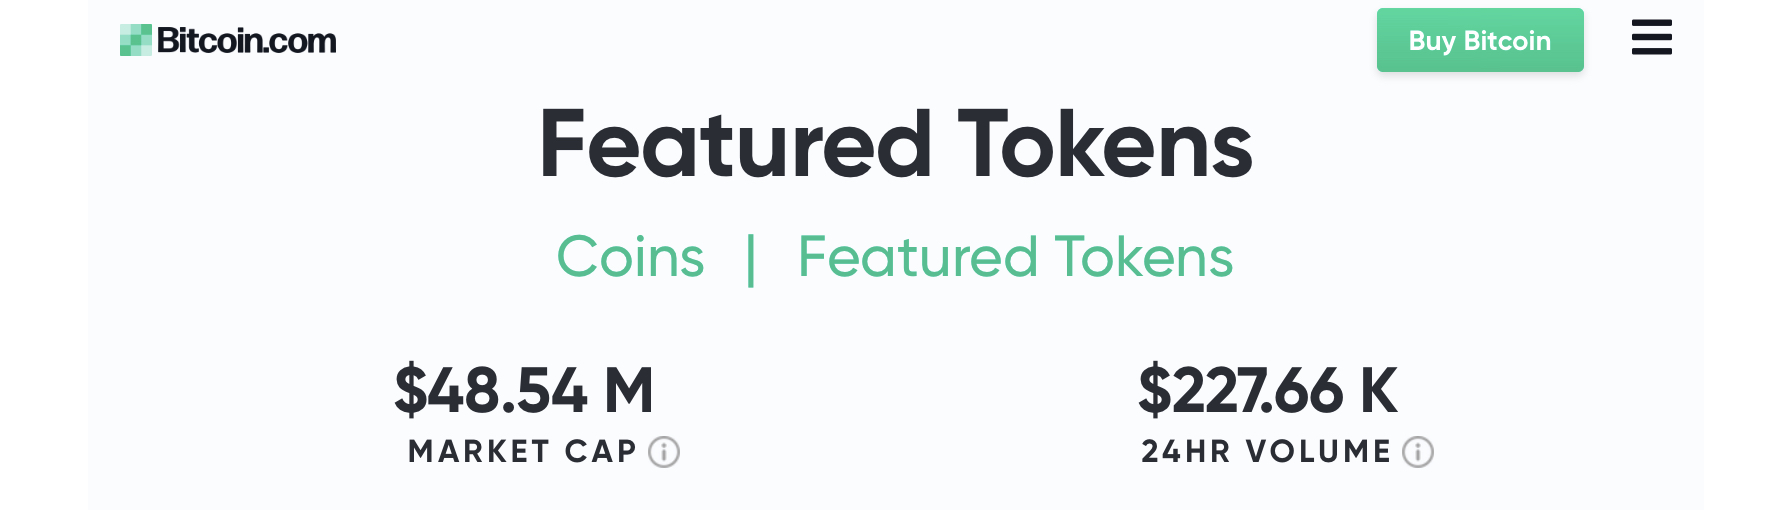 Check Out the New Featured Tokens on Bitcoin.com's Markets Page